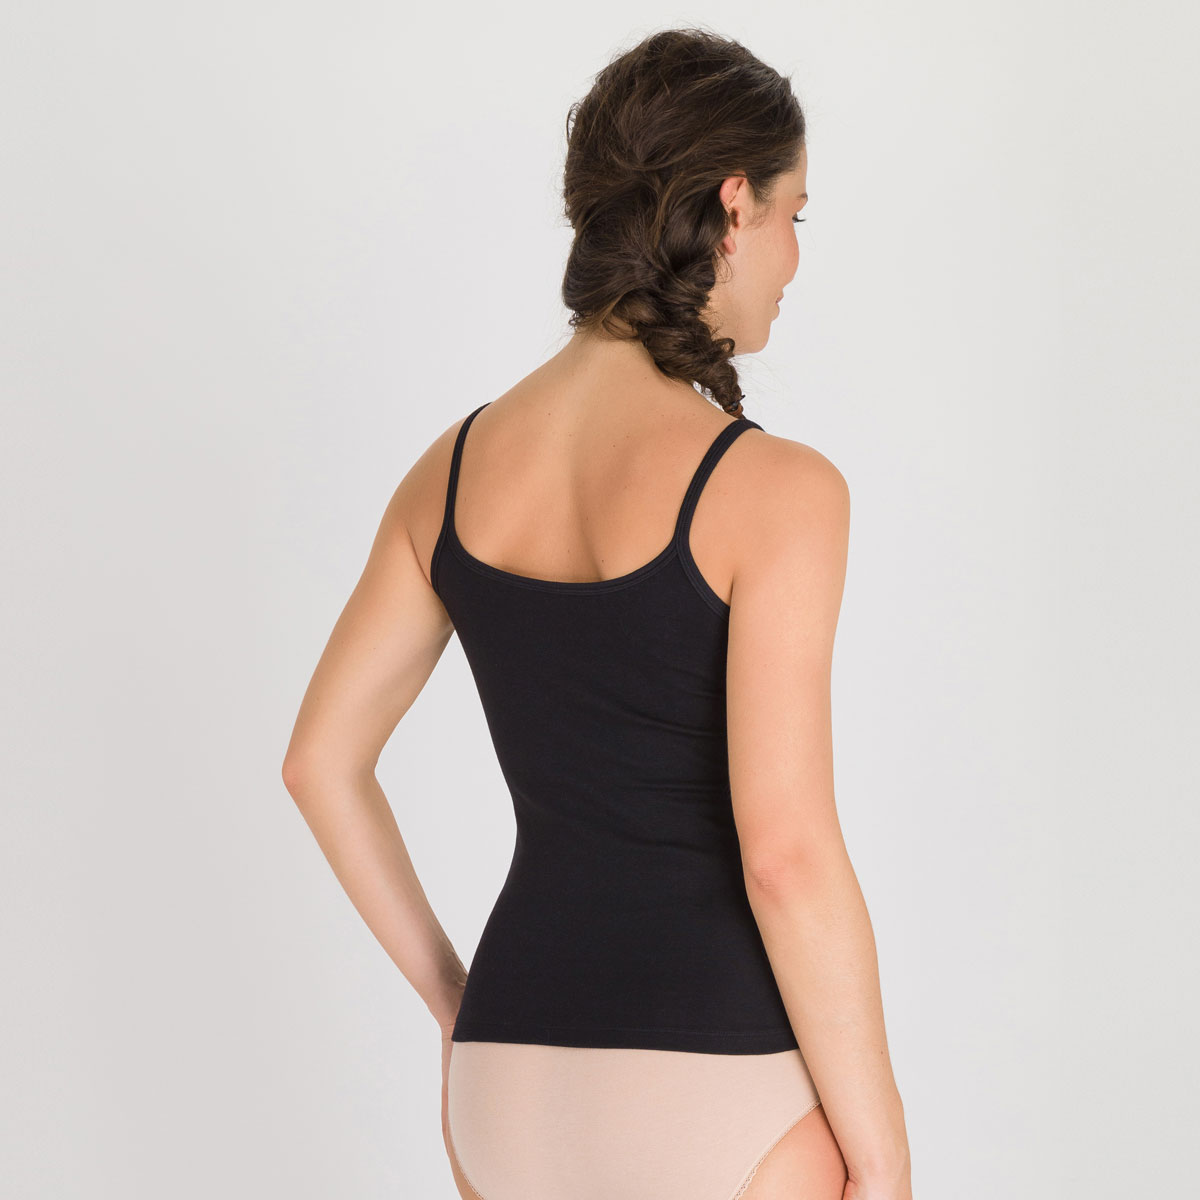 Camisole in Black - Cotton Liberty-PLAYTEX